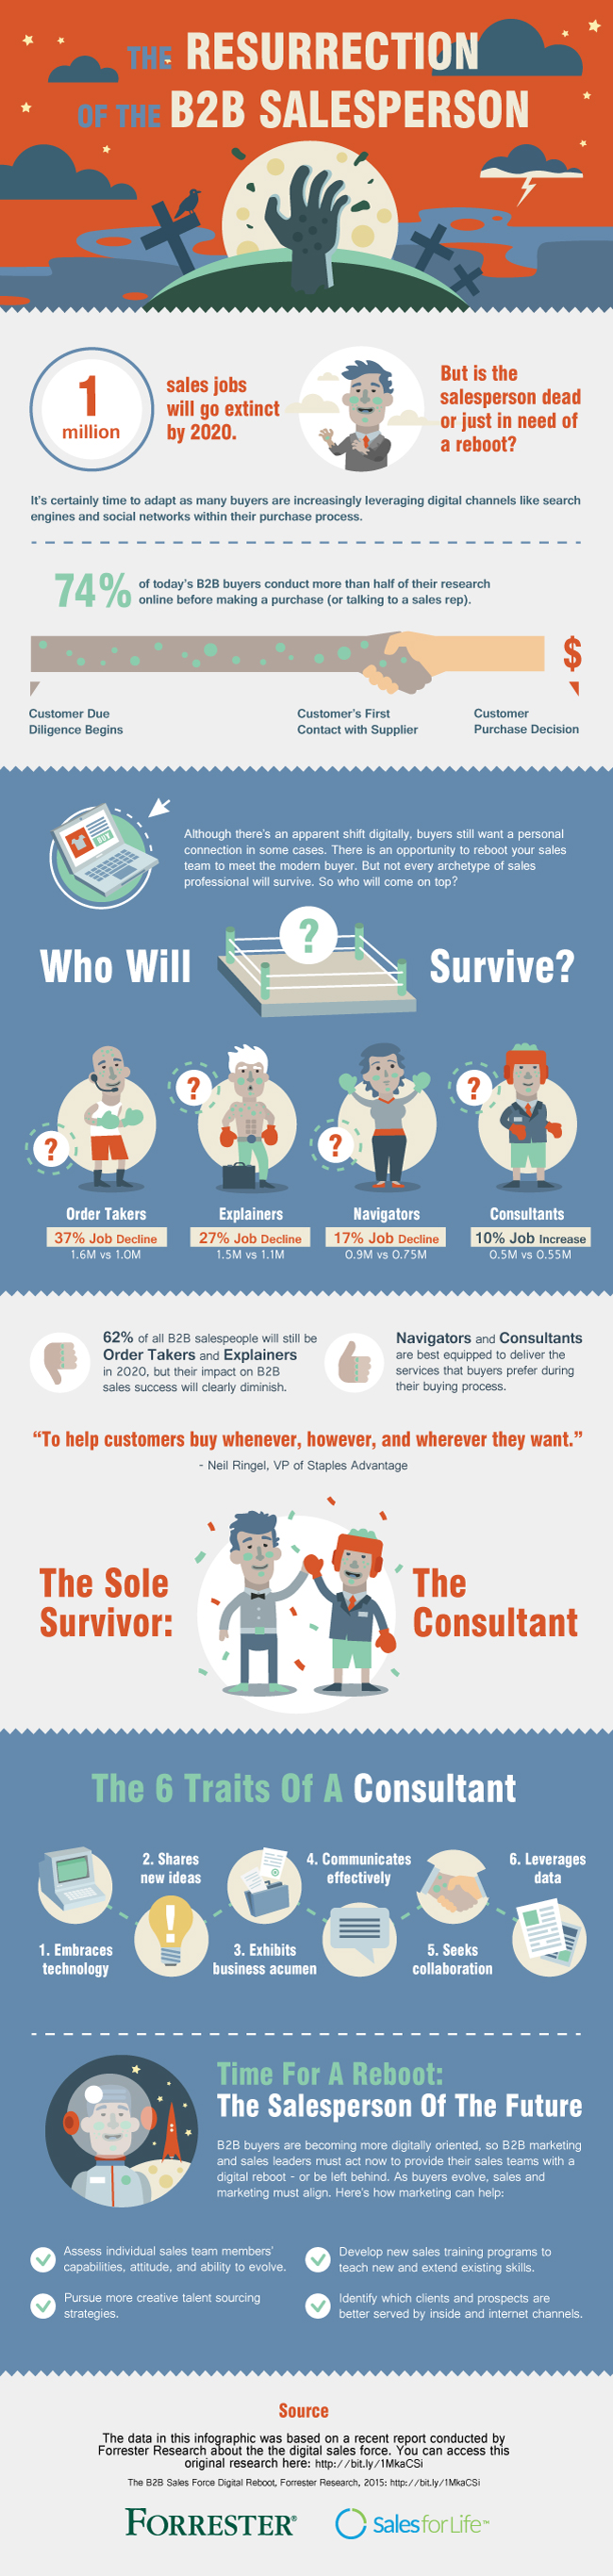 The-Resurrection-Of-The-B2B-Salesperson-Infographic-Forrester